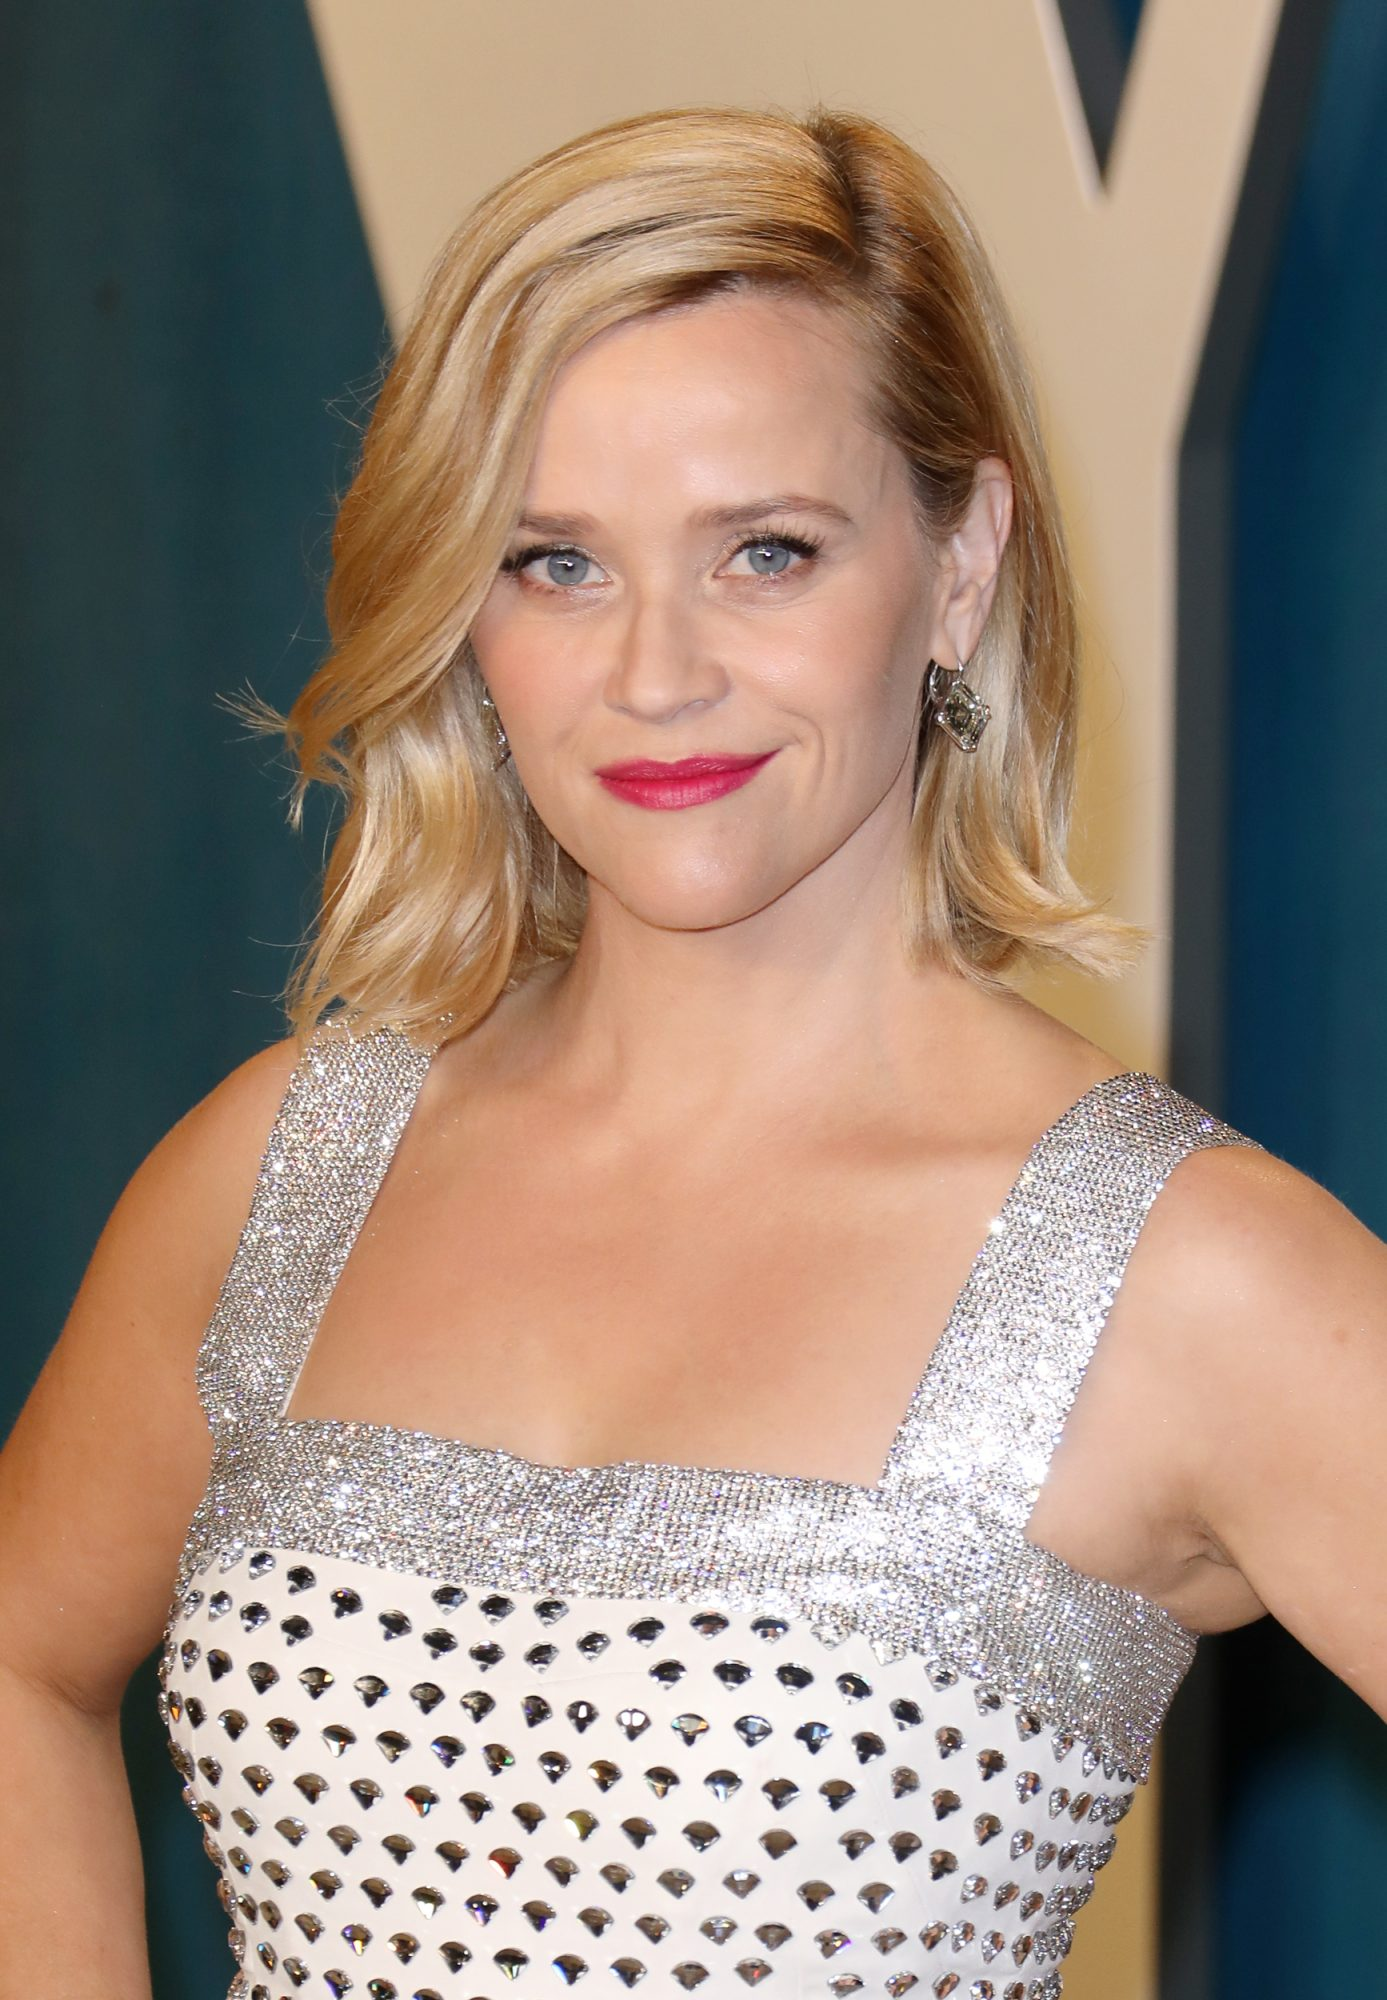 Reese Witherspoon and Laura Dern Twinned While Social Distancing